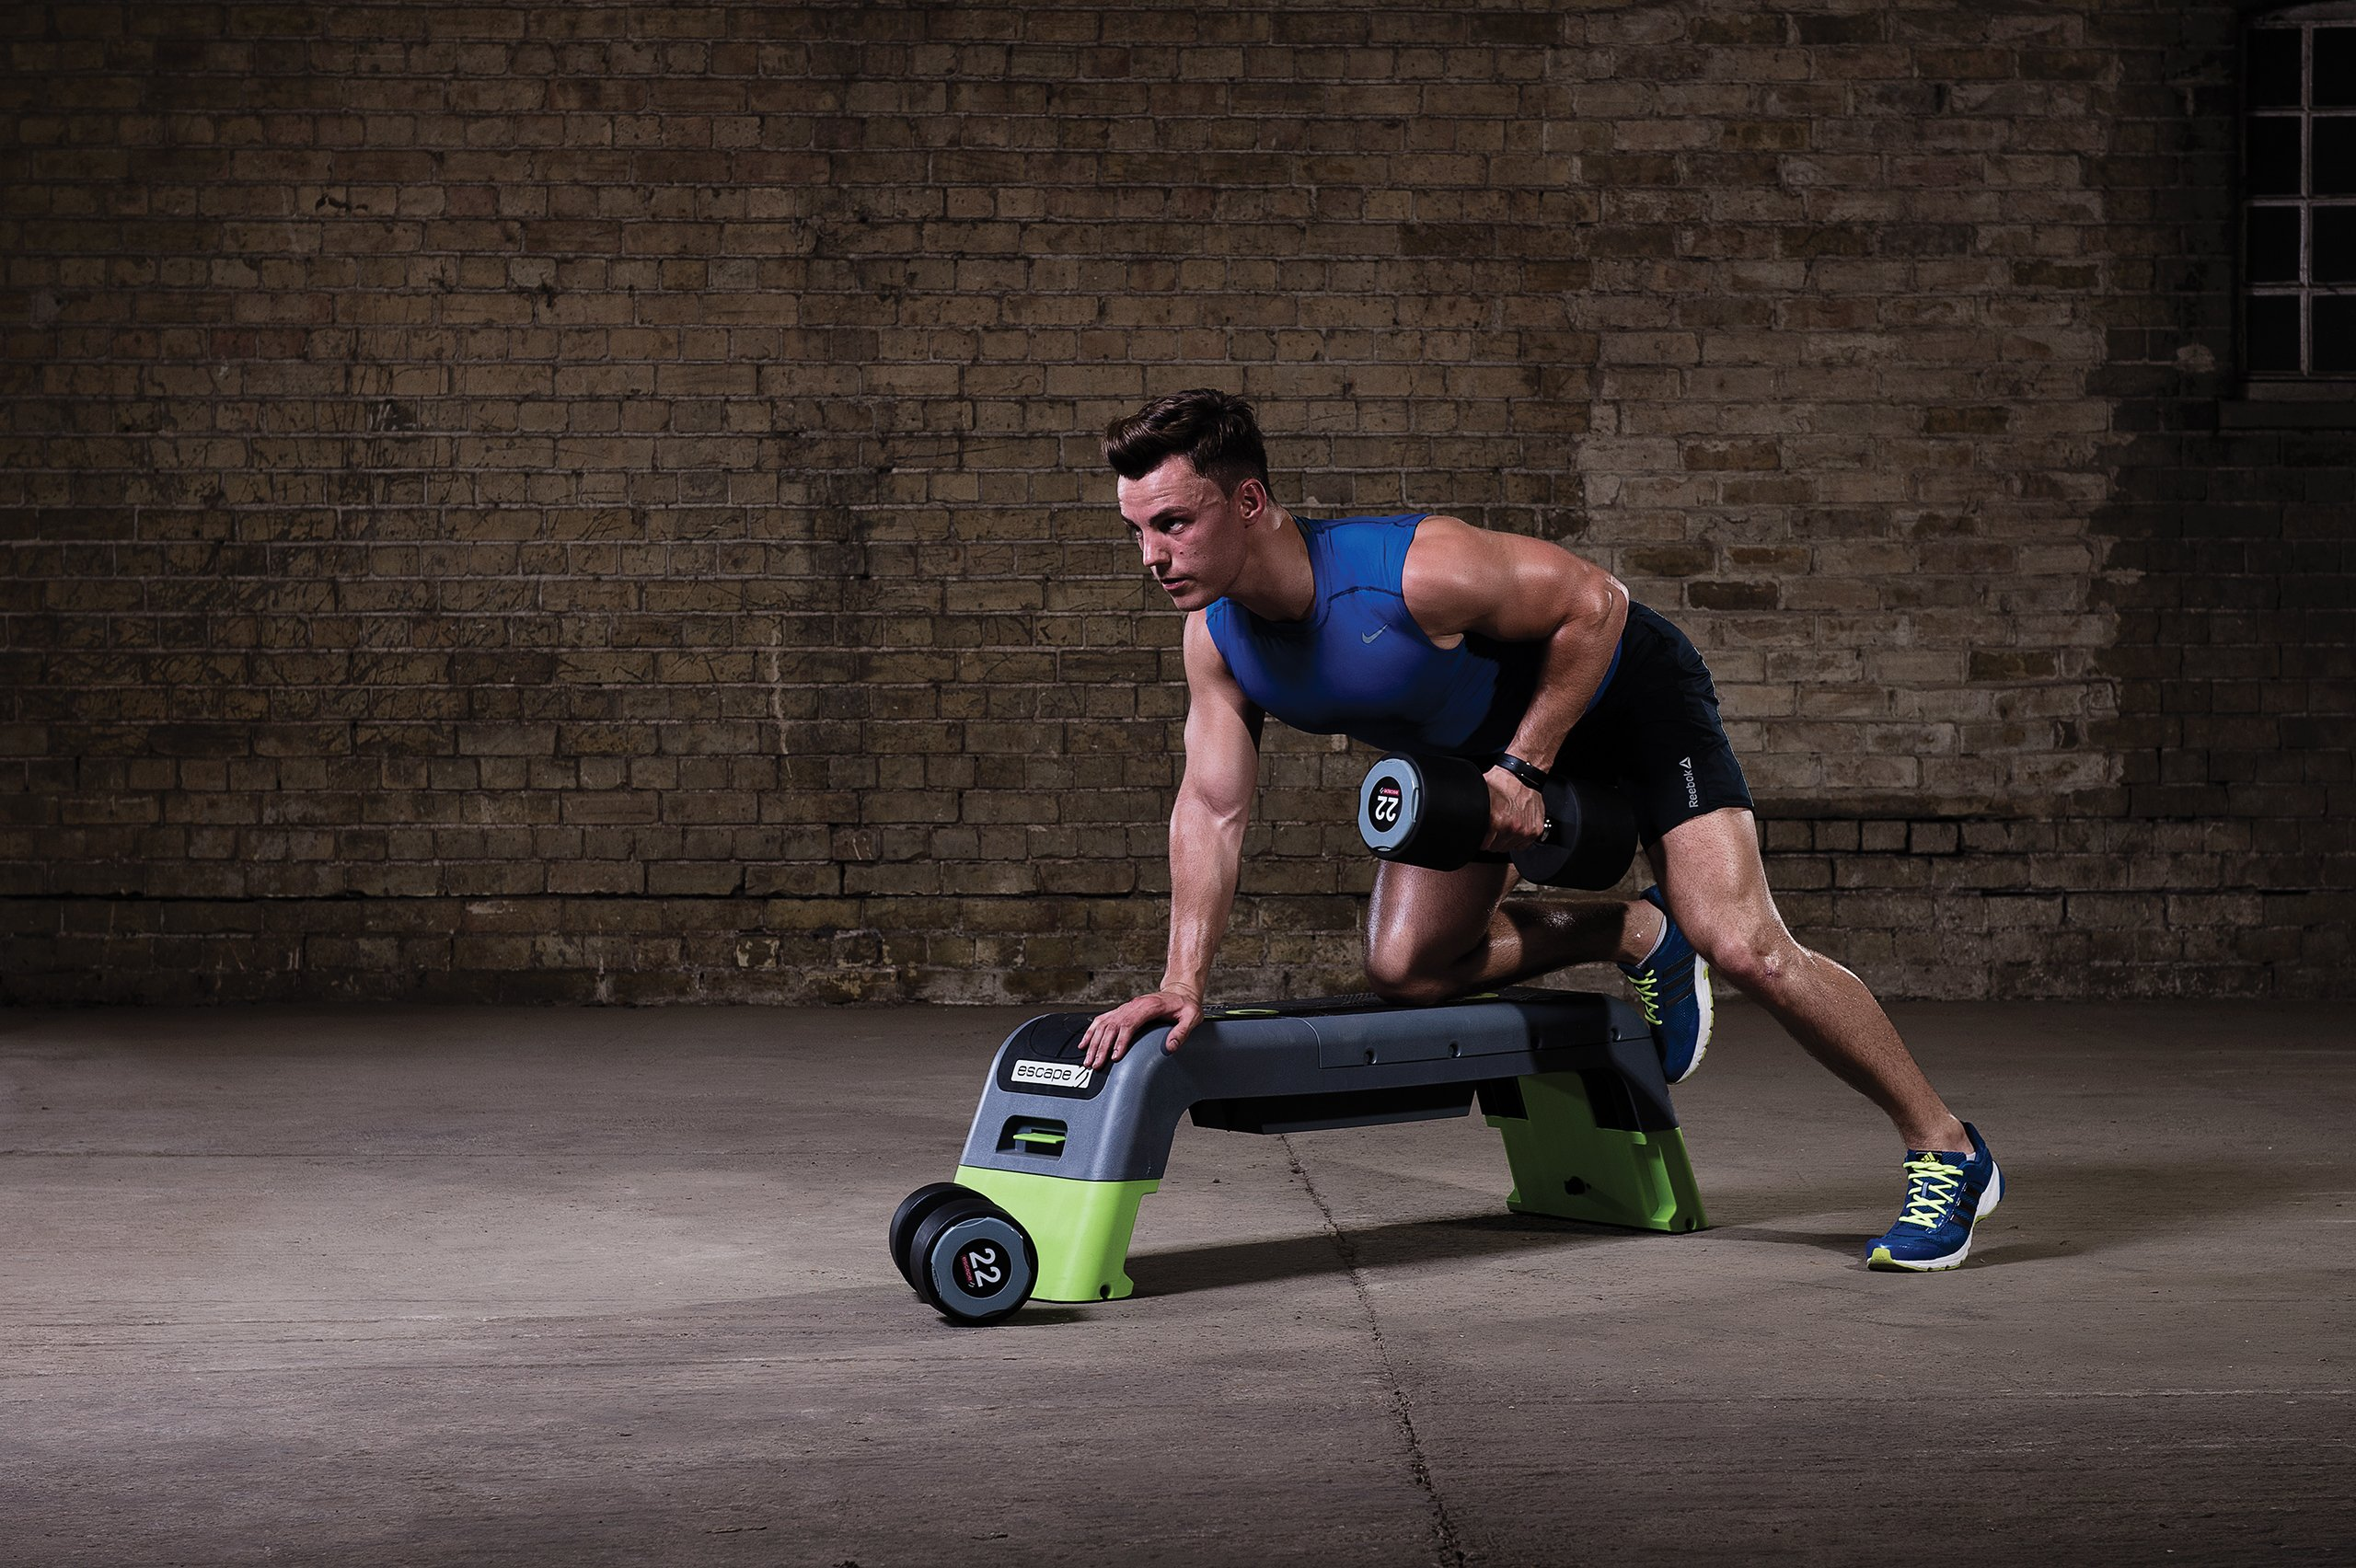 Escape Fitness Deck - Workout Bench and Fitness station by Escape Fitness USA (Image #11)